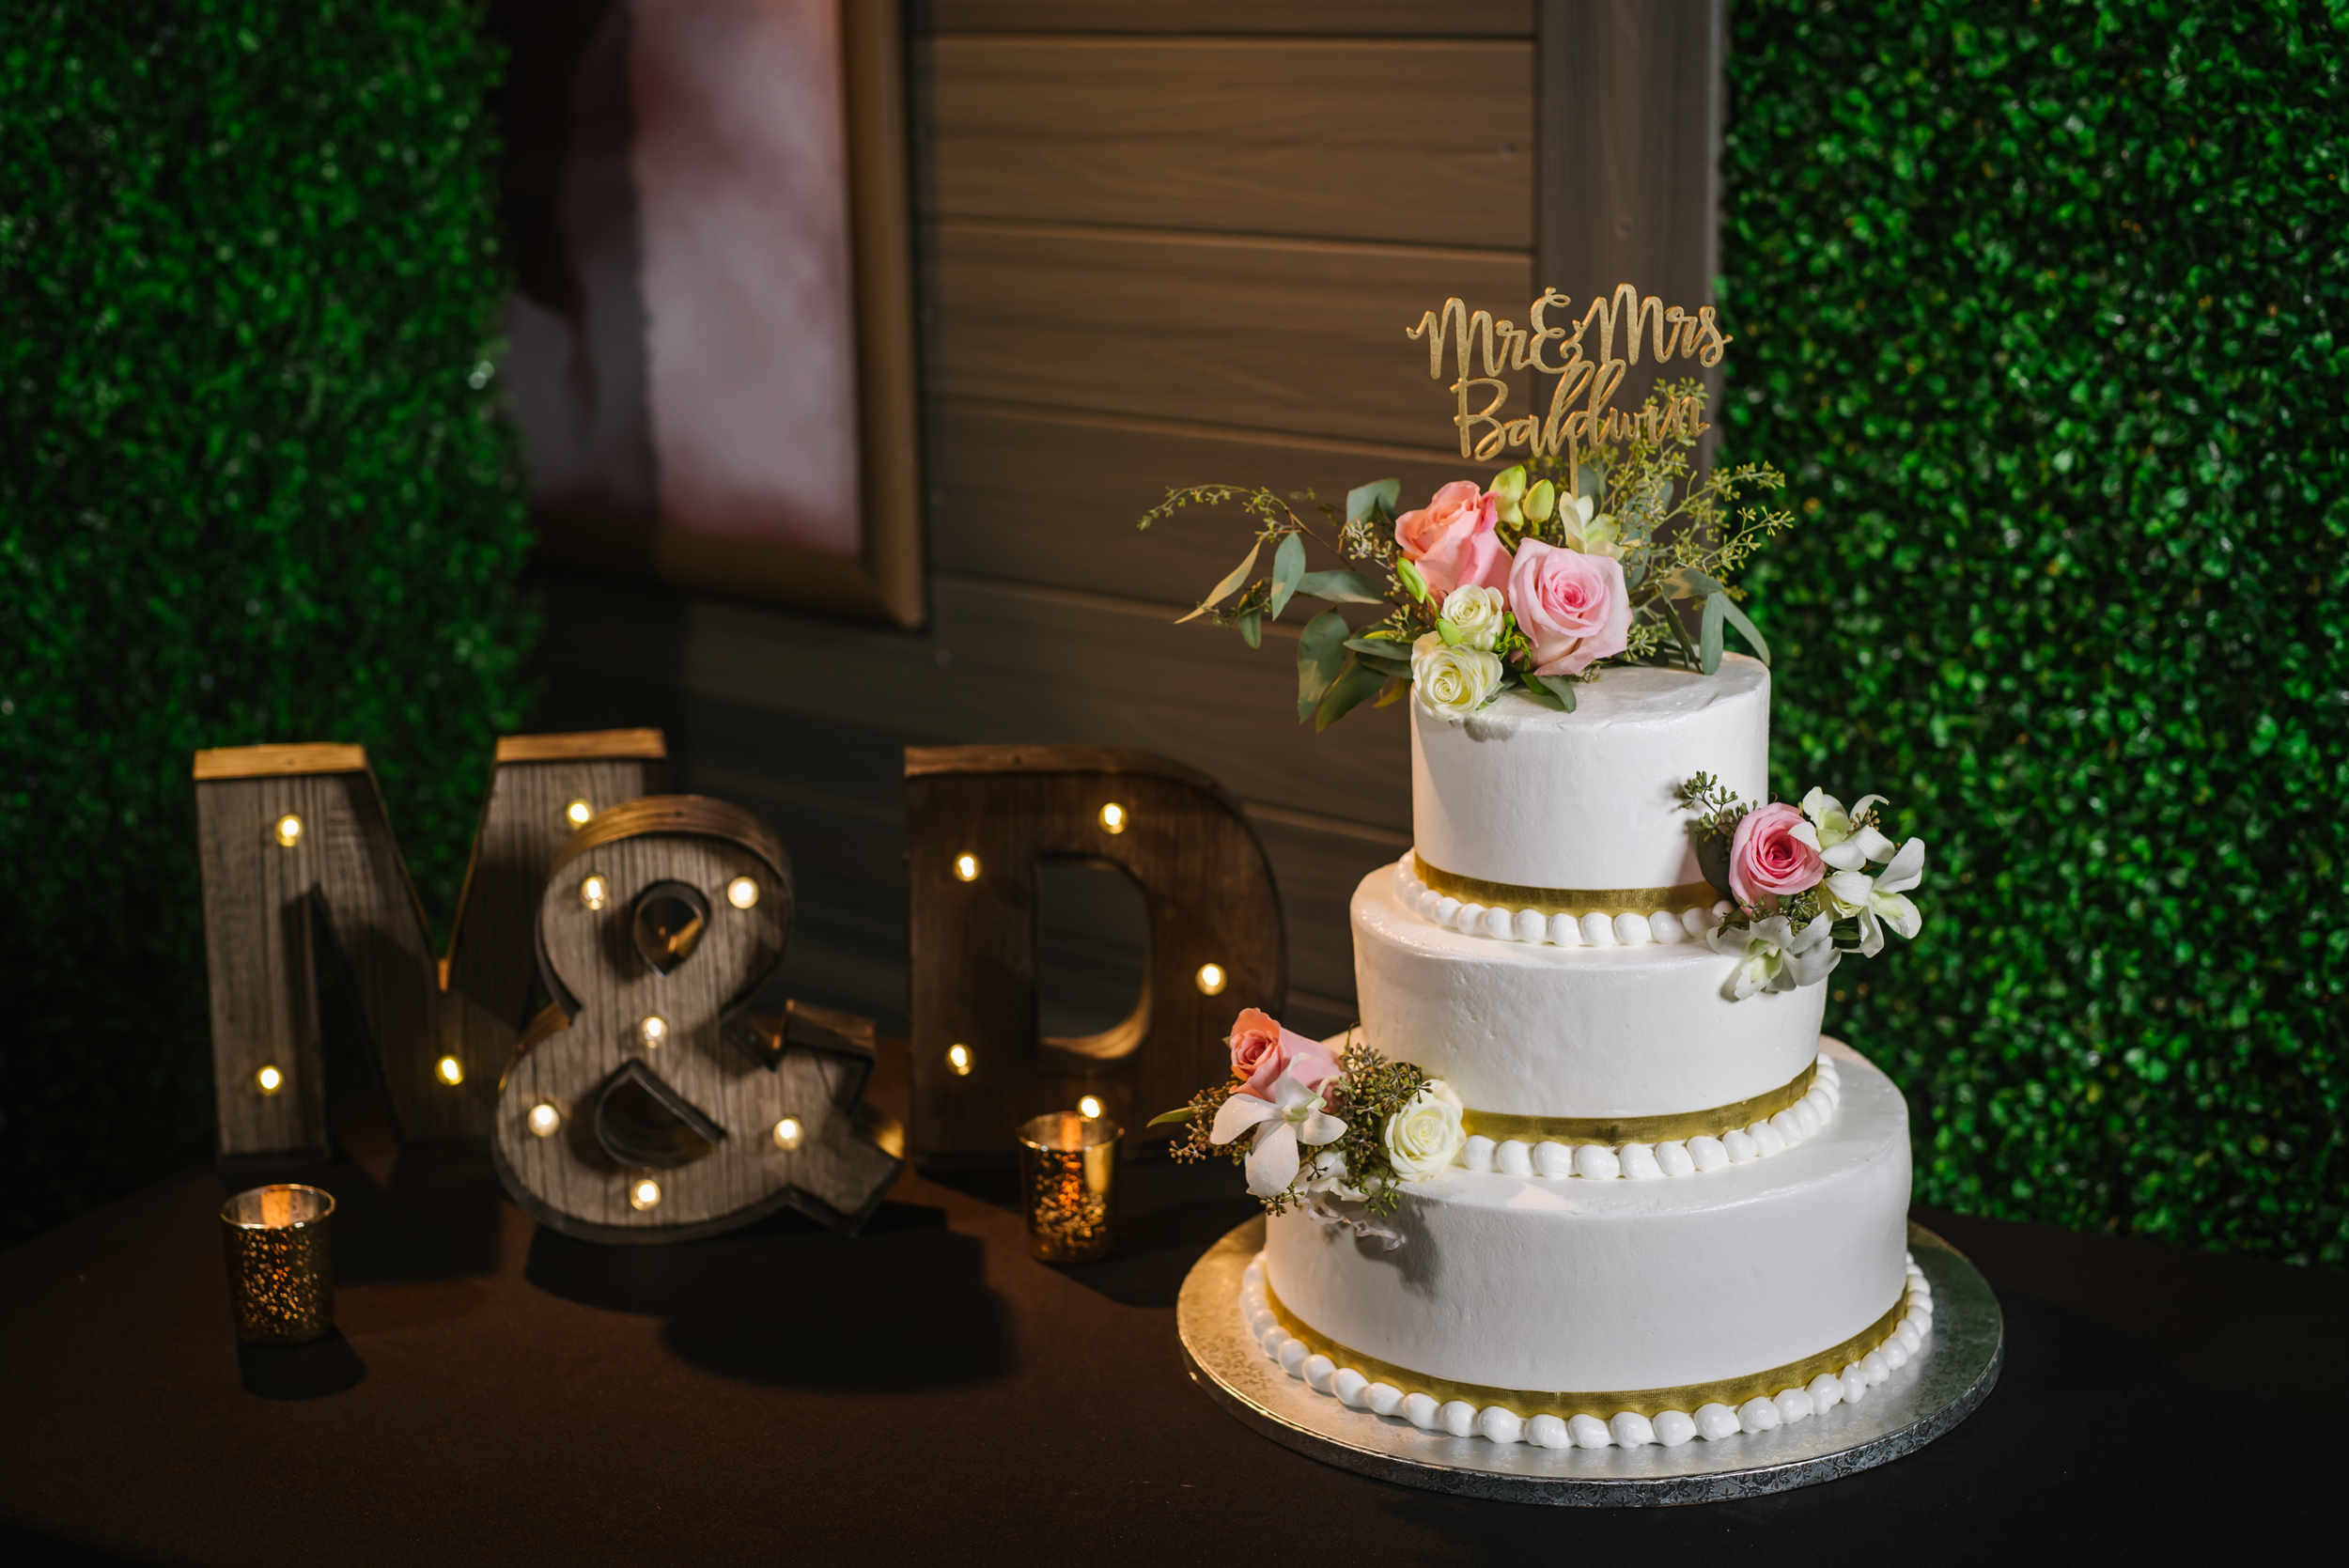 tampa-wedding-photographer-hotel-zamora-three-tier-cake-gold-lights-green-pink-flowers-calligraphy-topper